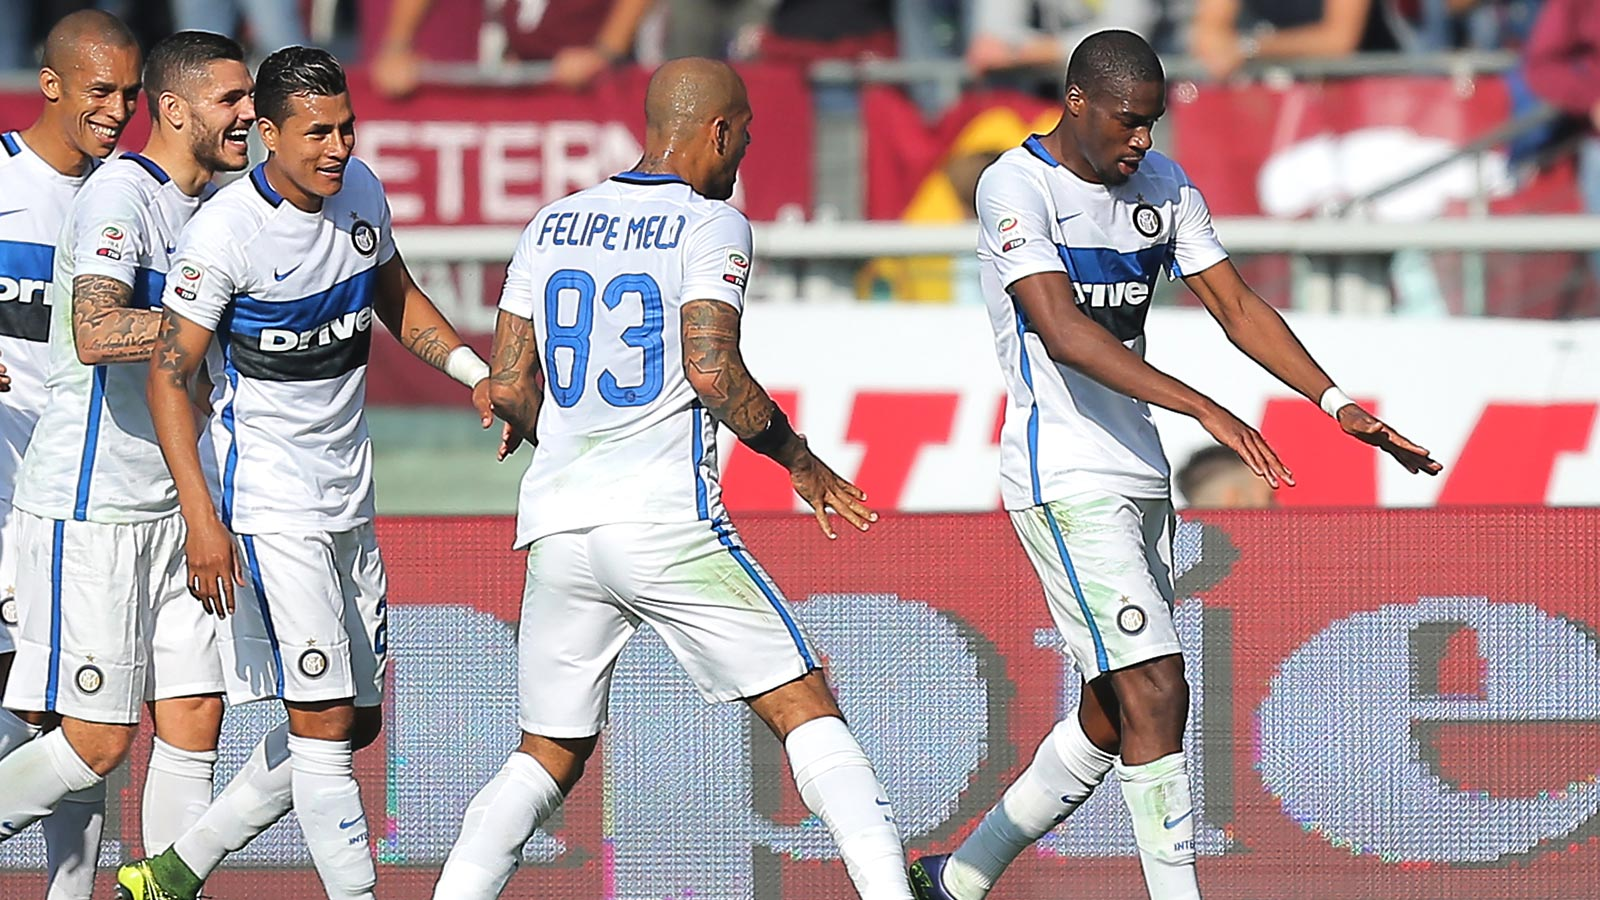 Kondogbia strike maintains Inter Milan win streak, tops Torino